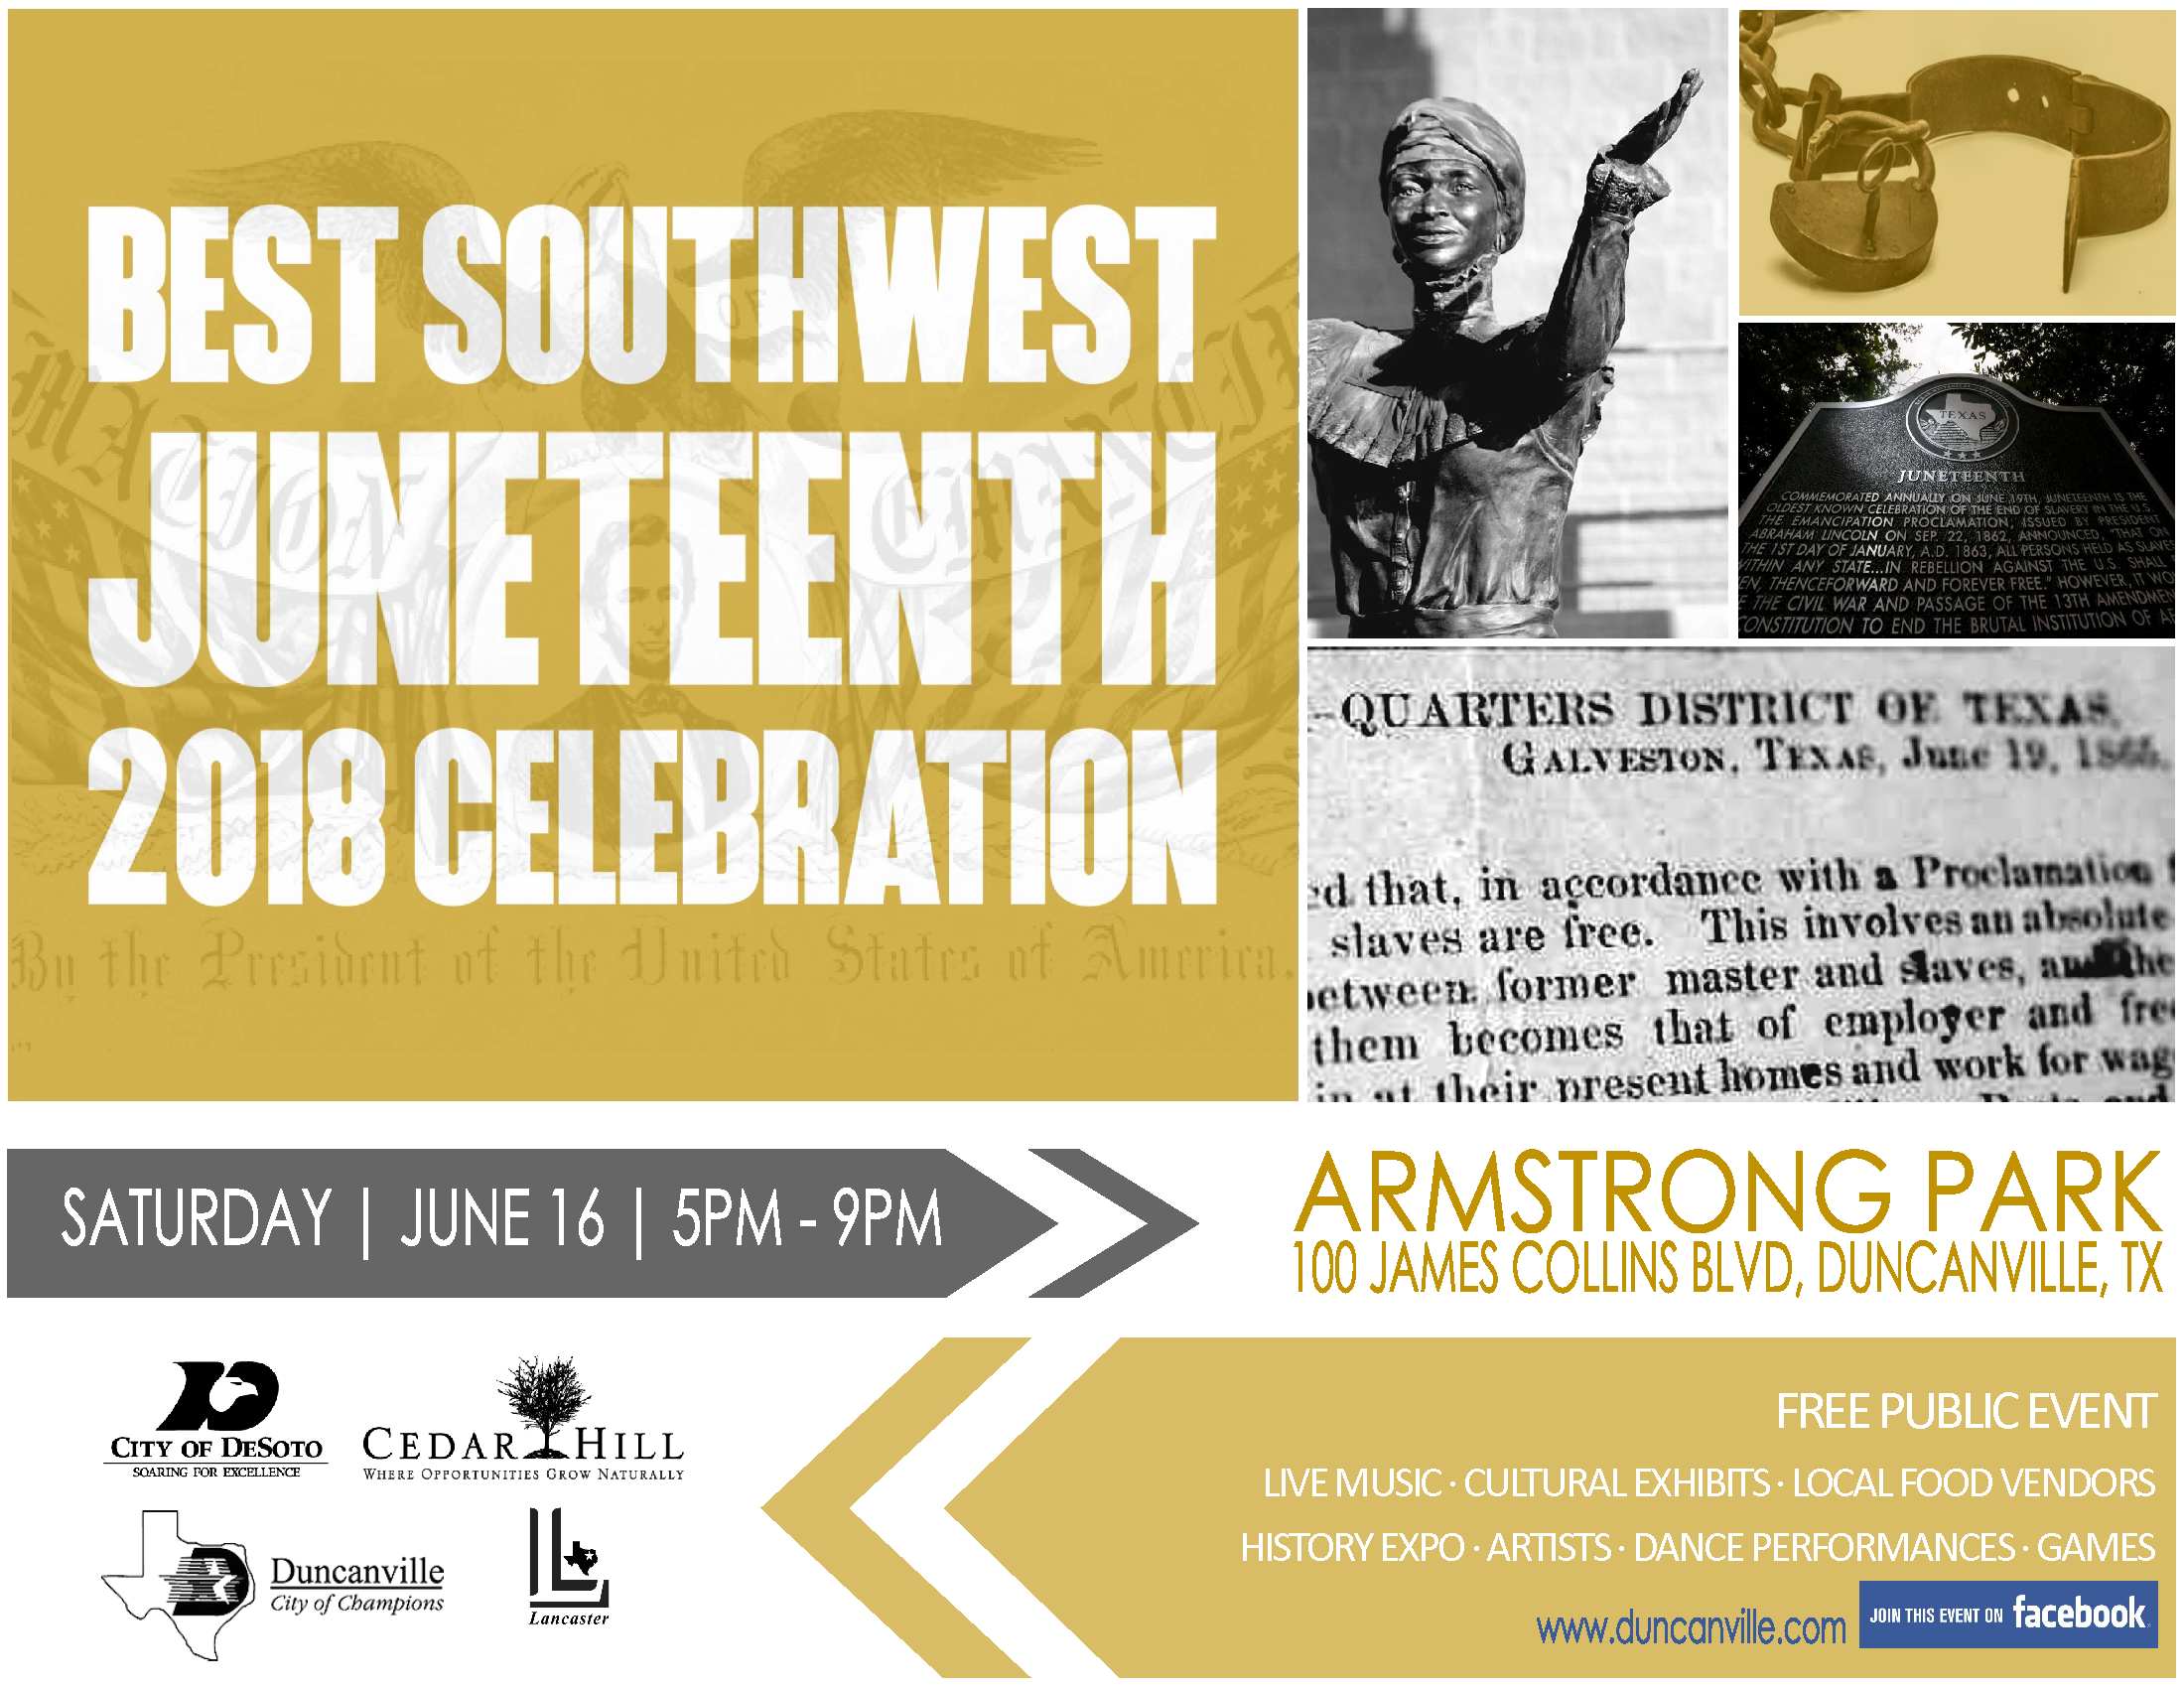 2018-Juneteenth-Flyer Street Map Of City Lancaster on map of flint city streets, map of las vegas city streets, map of baltimore city streets, map of killeen city streets, map of reading city streets, map of cincinnati city streets, map of providence city streets, map of hemet city streets, map of santa barbara city streets, map of detroit city streets, map of houston city streets, map of jackson city streets, map of manchester city streets, map of elizabethtown city streets, map of fremont city streets, map of elkins city streets, map of tucson city streets, map of fairborn city streets, map of manteca city streets,